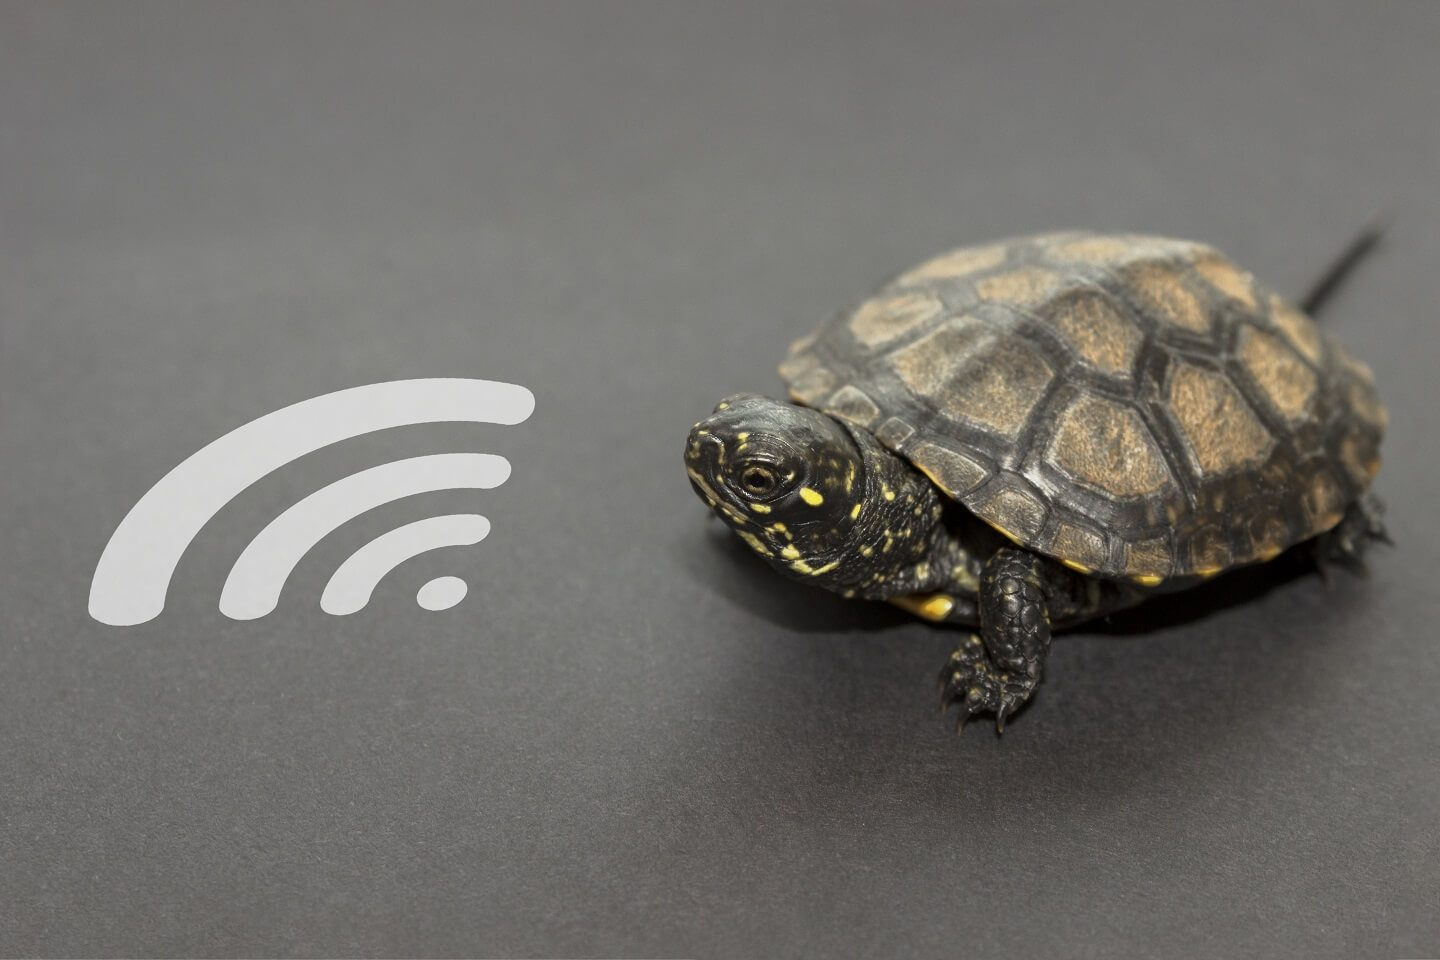 A turtle next to a wifi signal which signifies a slow internet